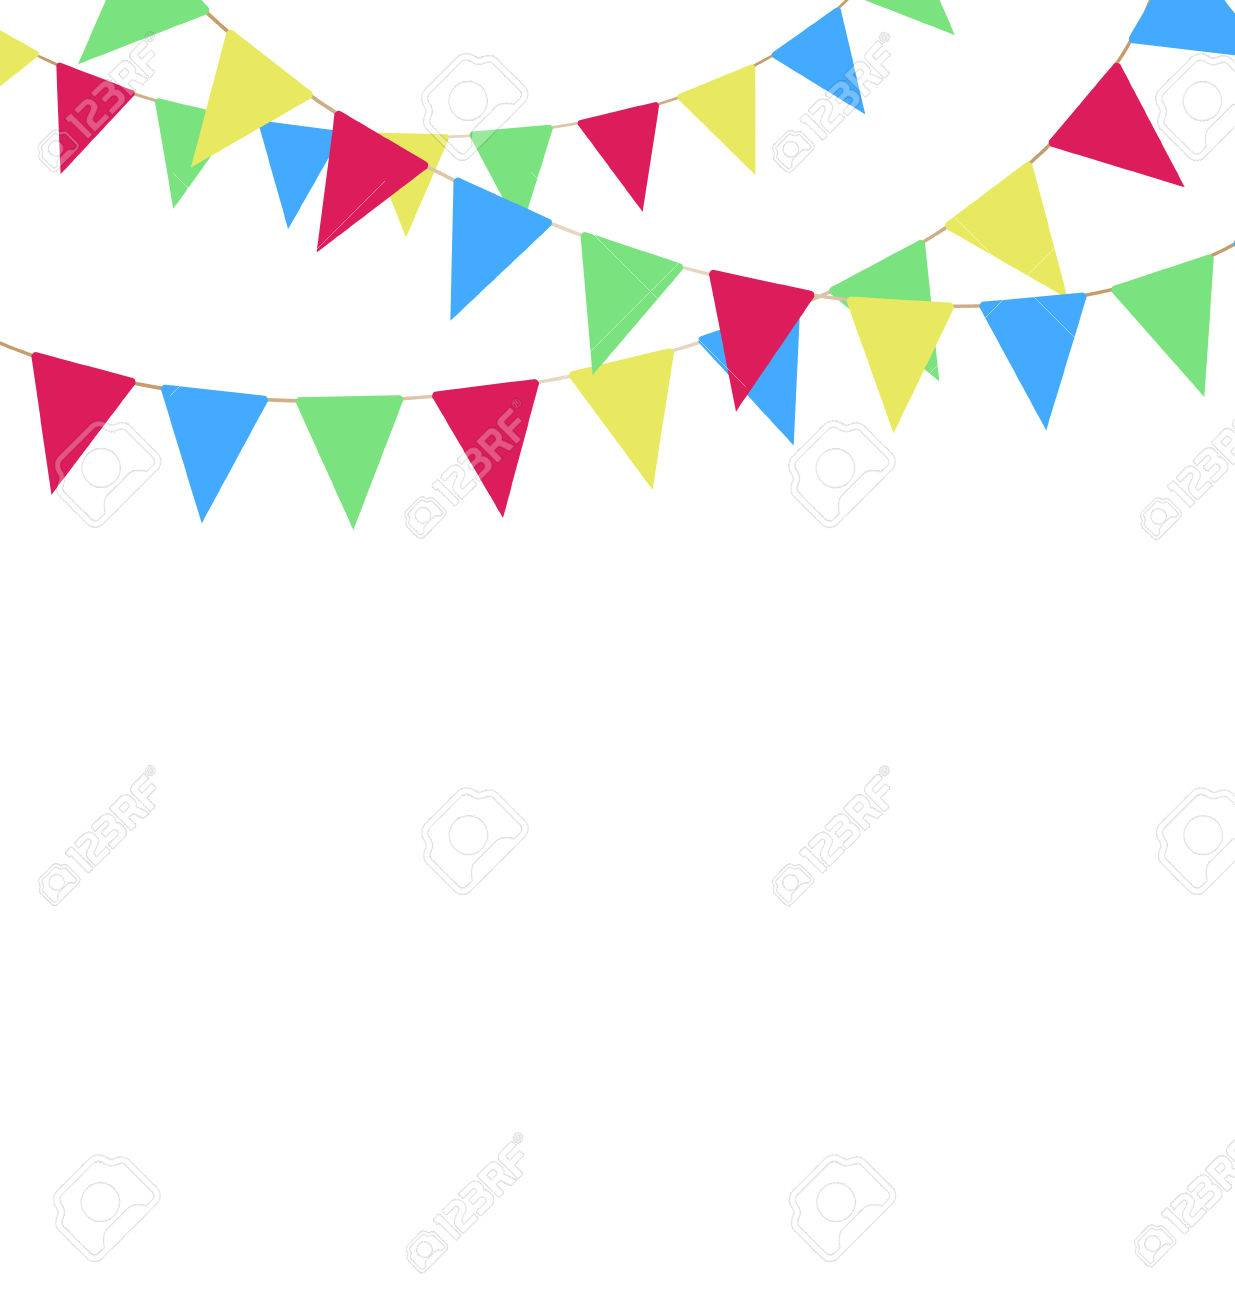 Multicolored bright buntings garlands isolated on white background - 34824635